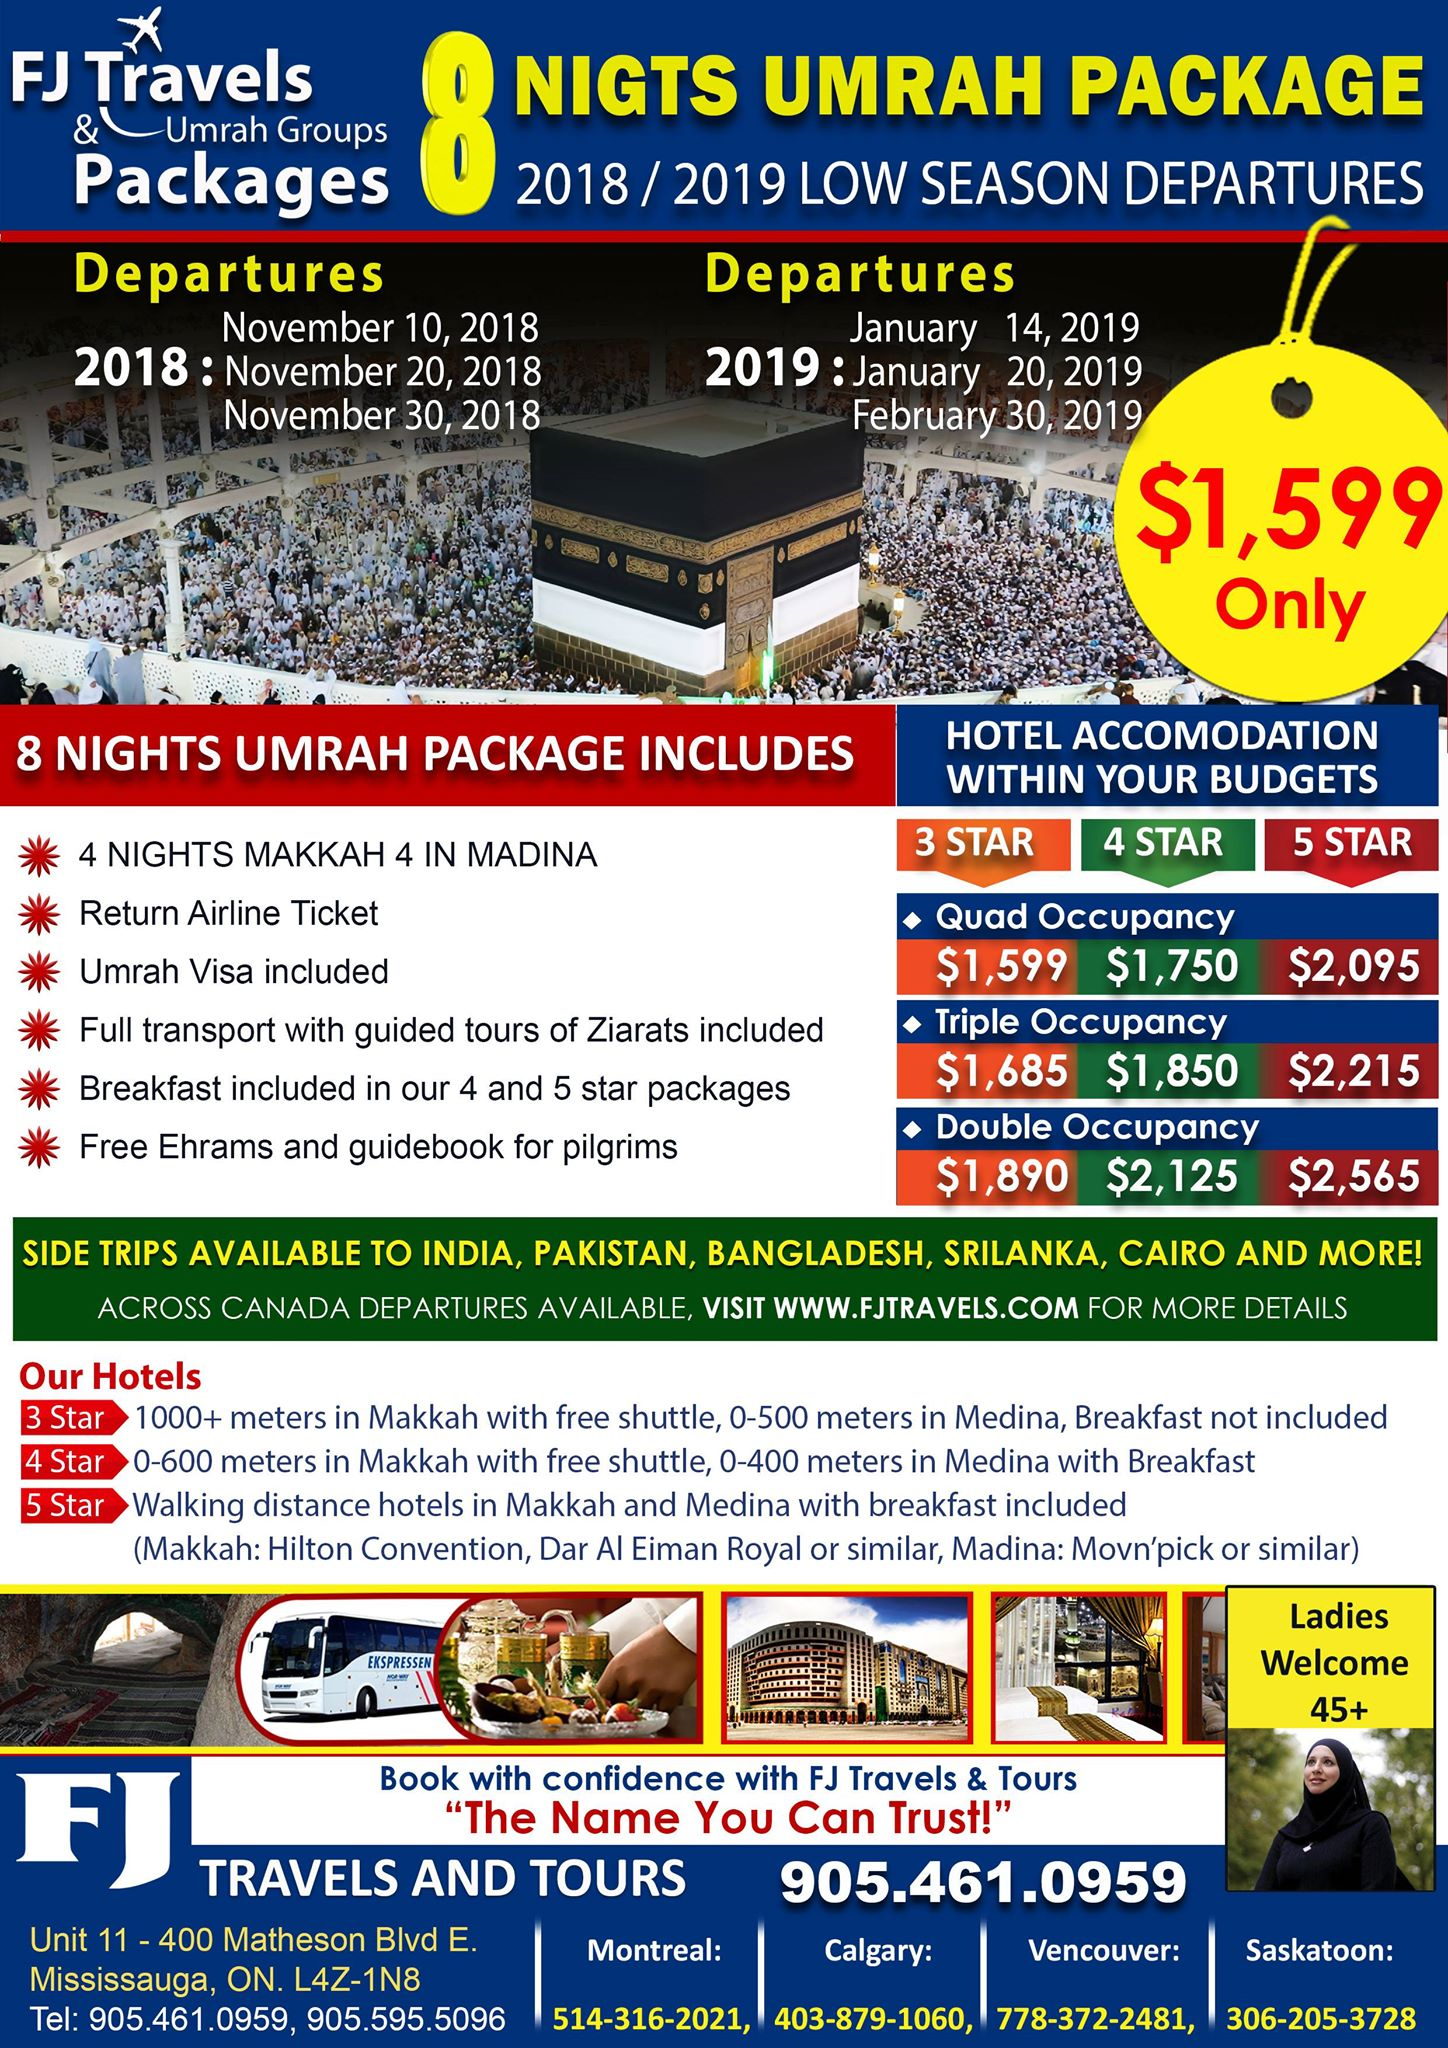 OCT 16 FJ TRAVELS 08 NIGHTS LOW SEASON 2018 2019 UMRAH PACAKGE WITH OMAN AIR